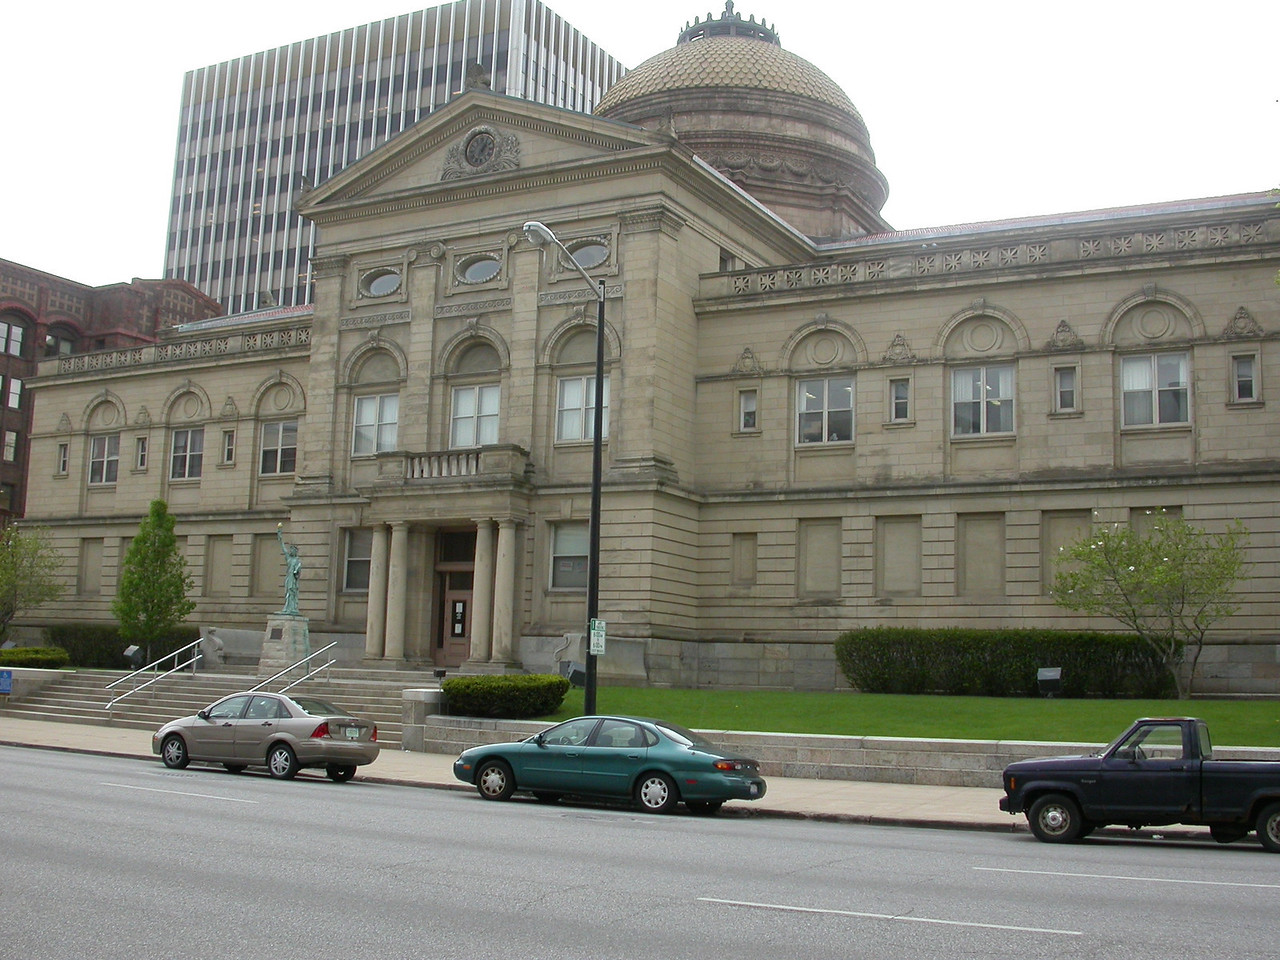 St. Joseph County Courthouse, South Bend, Indiana, April 2004.